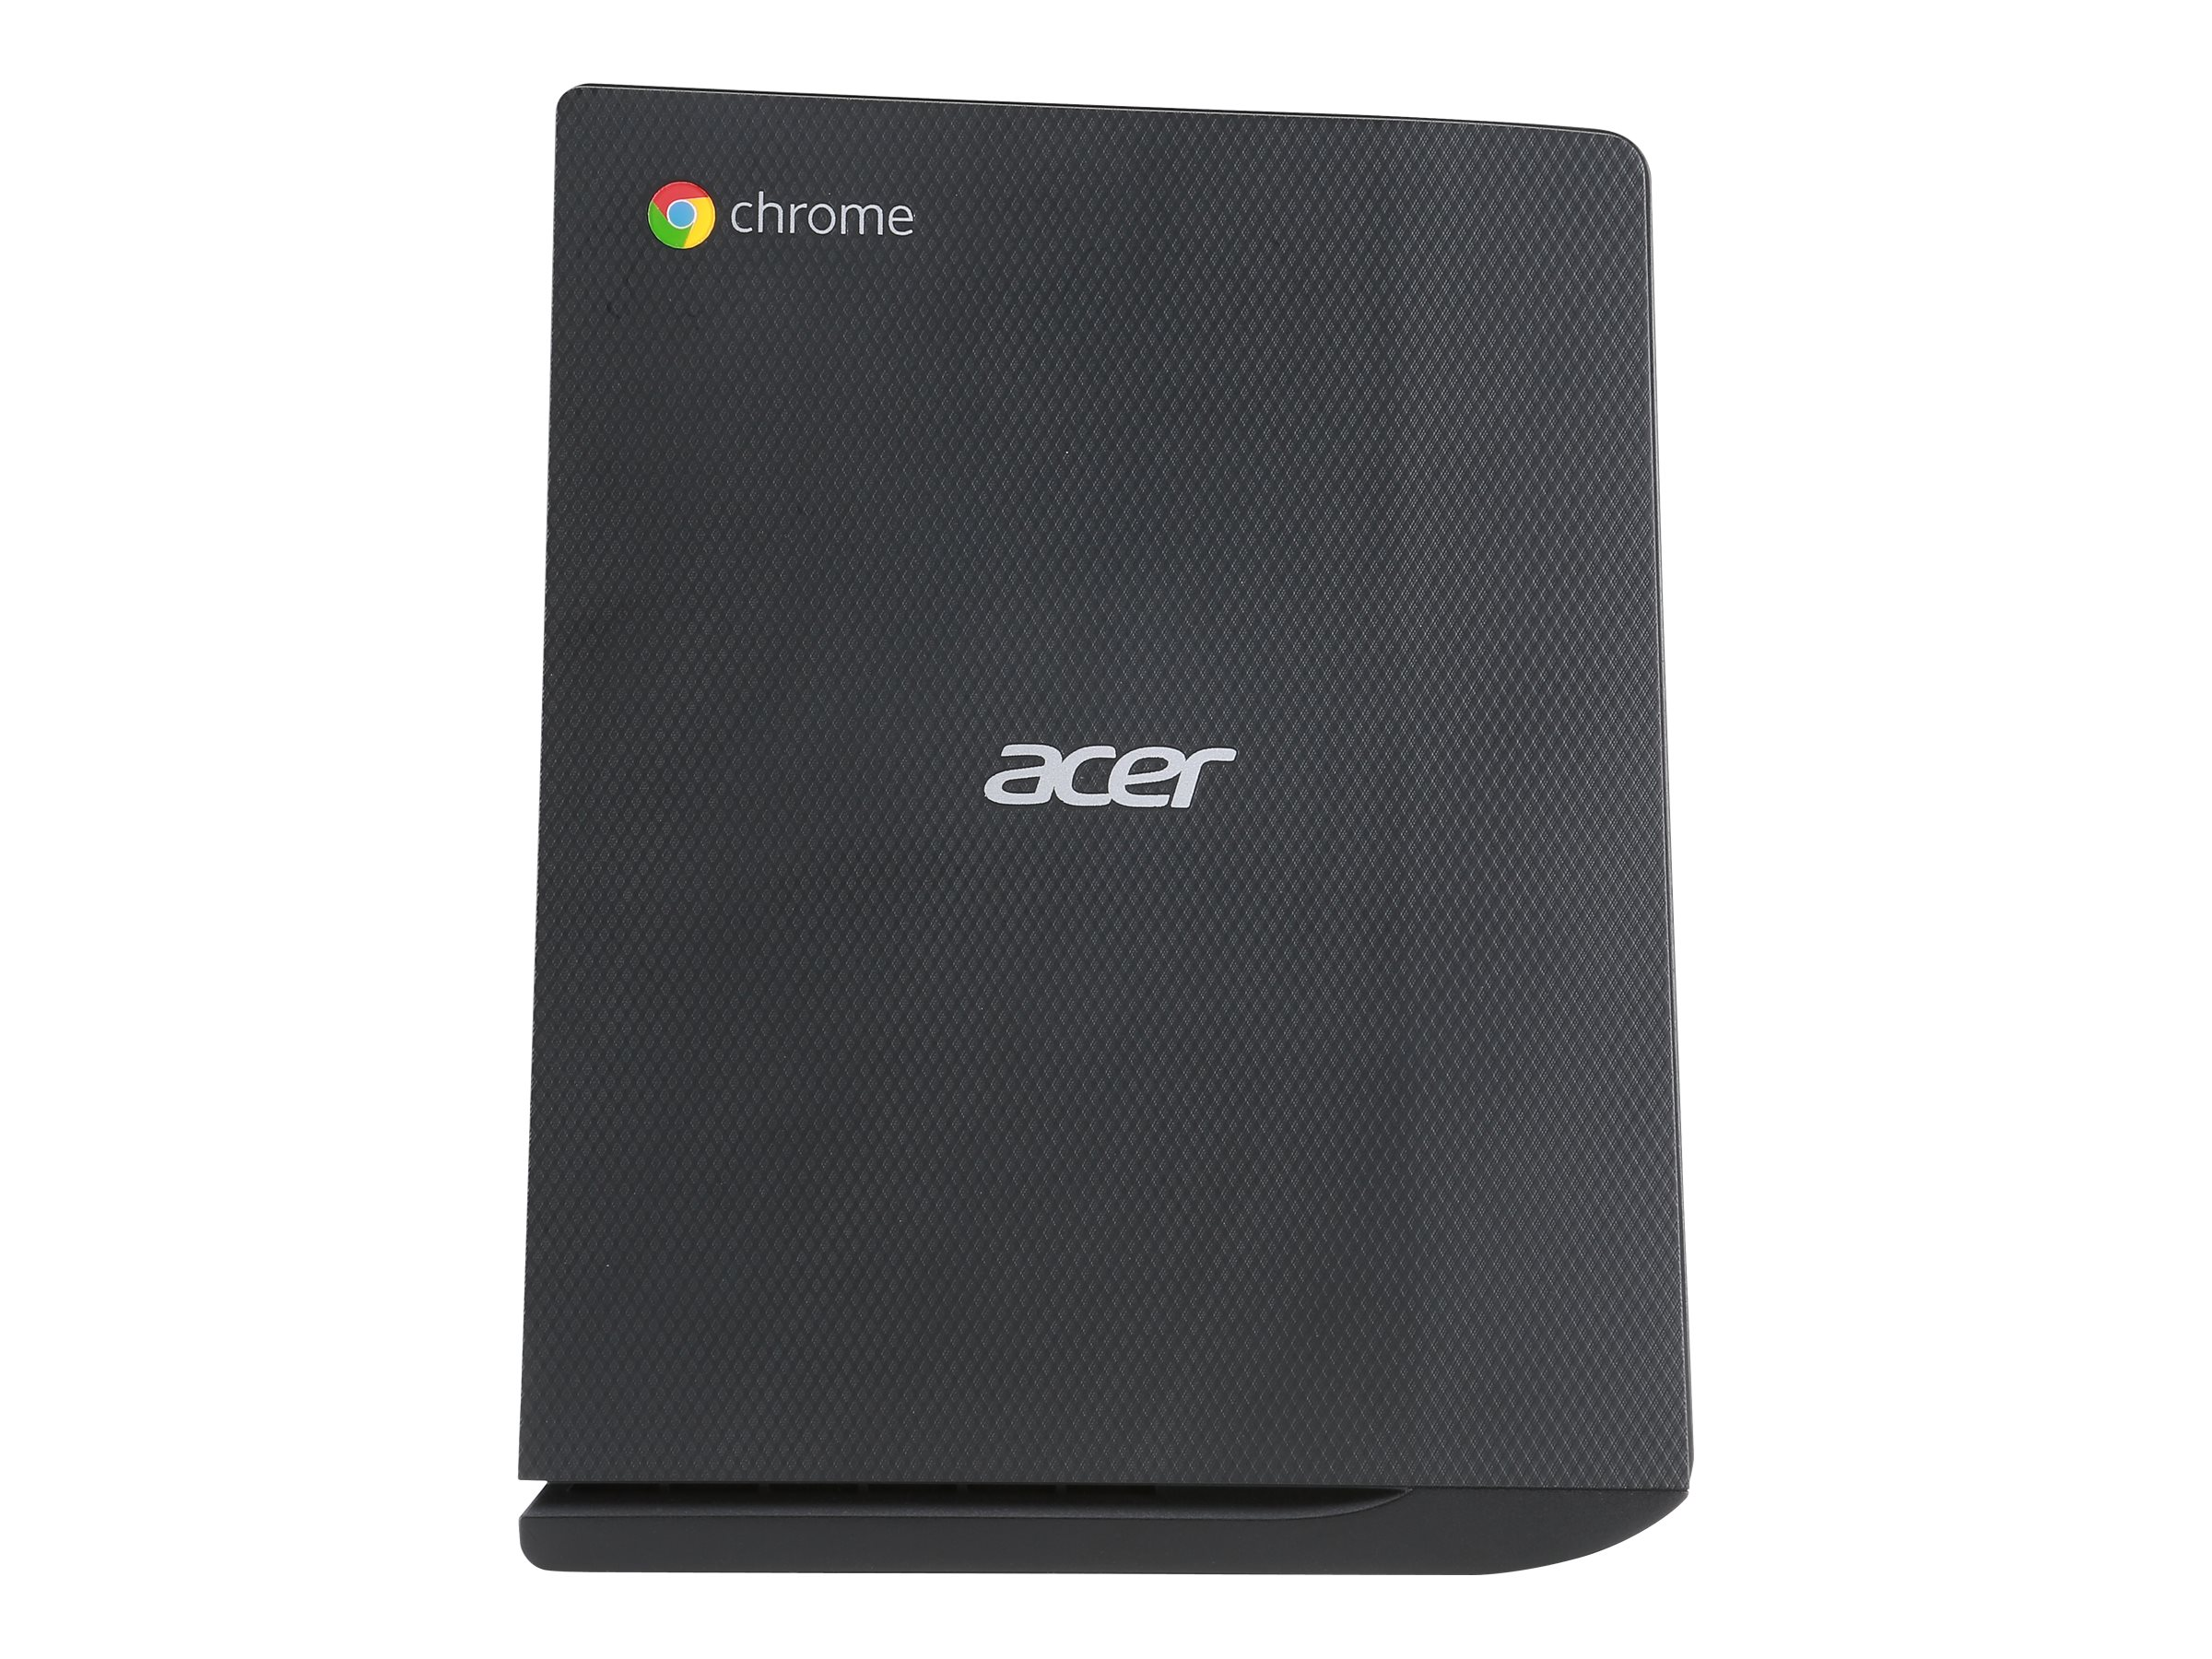 Acer DT.Z0AAA.003 Image 6